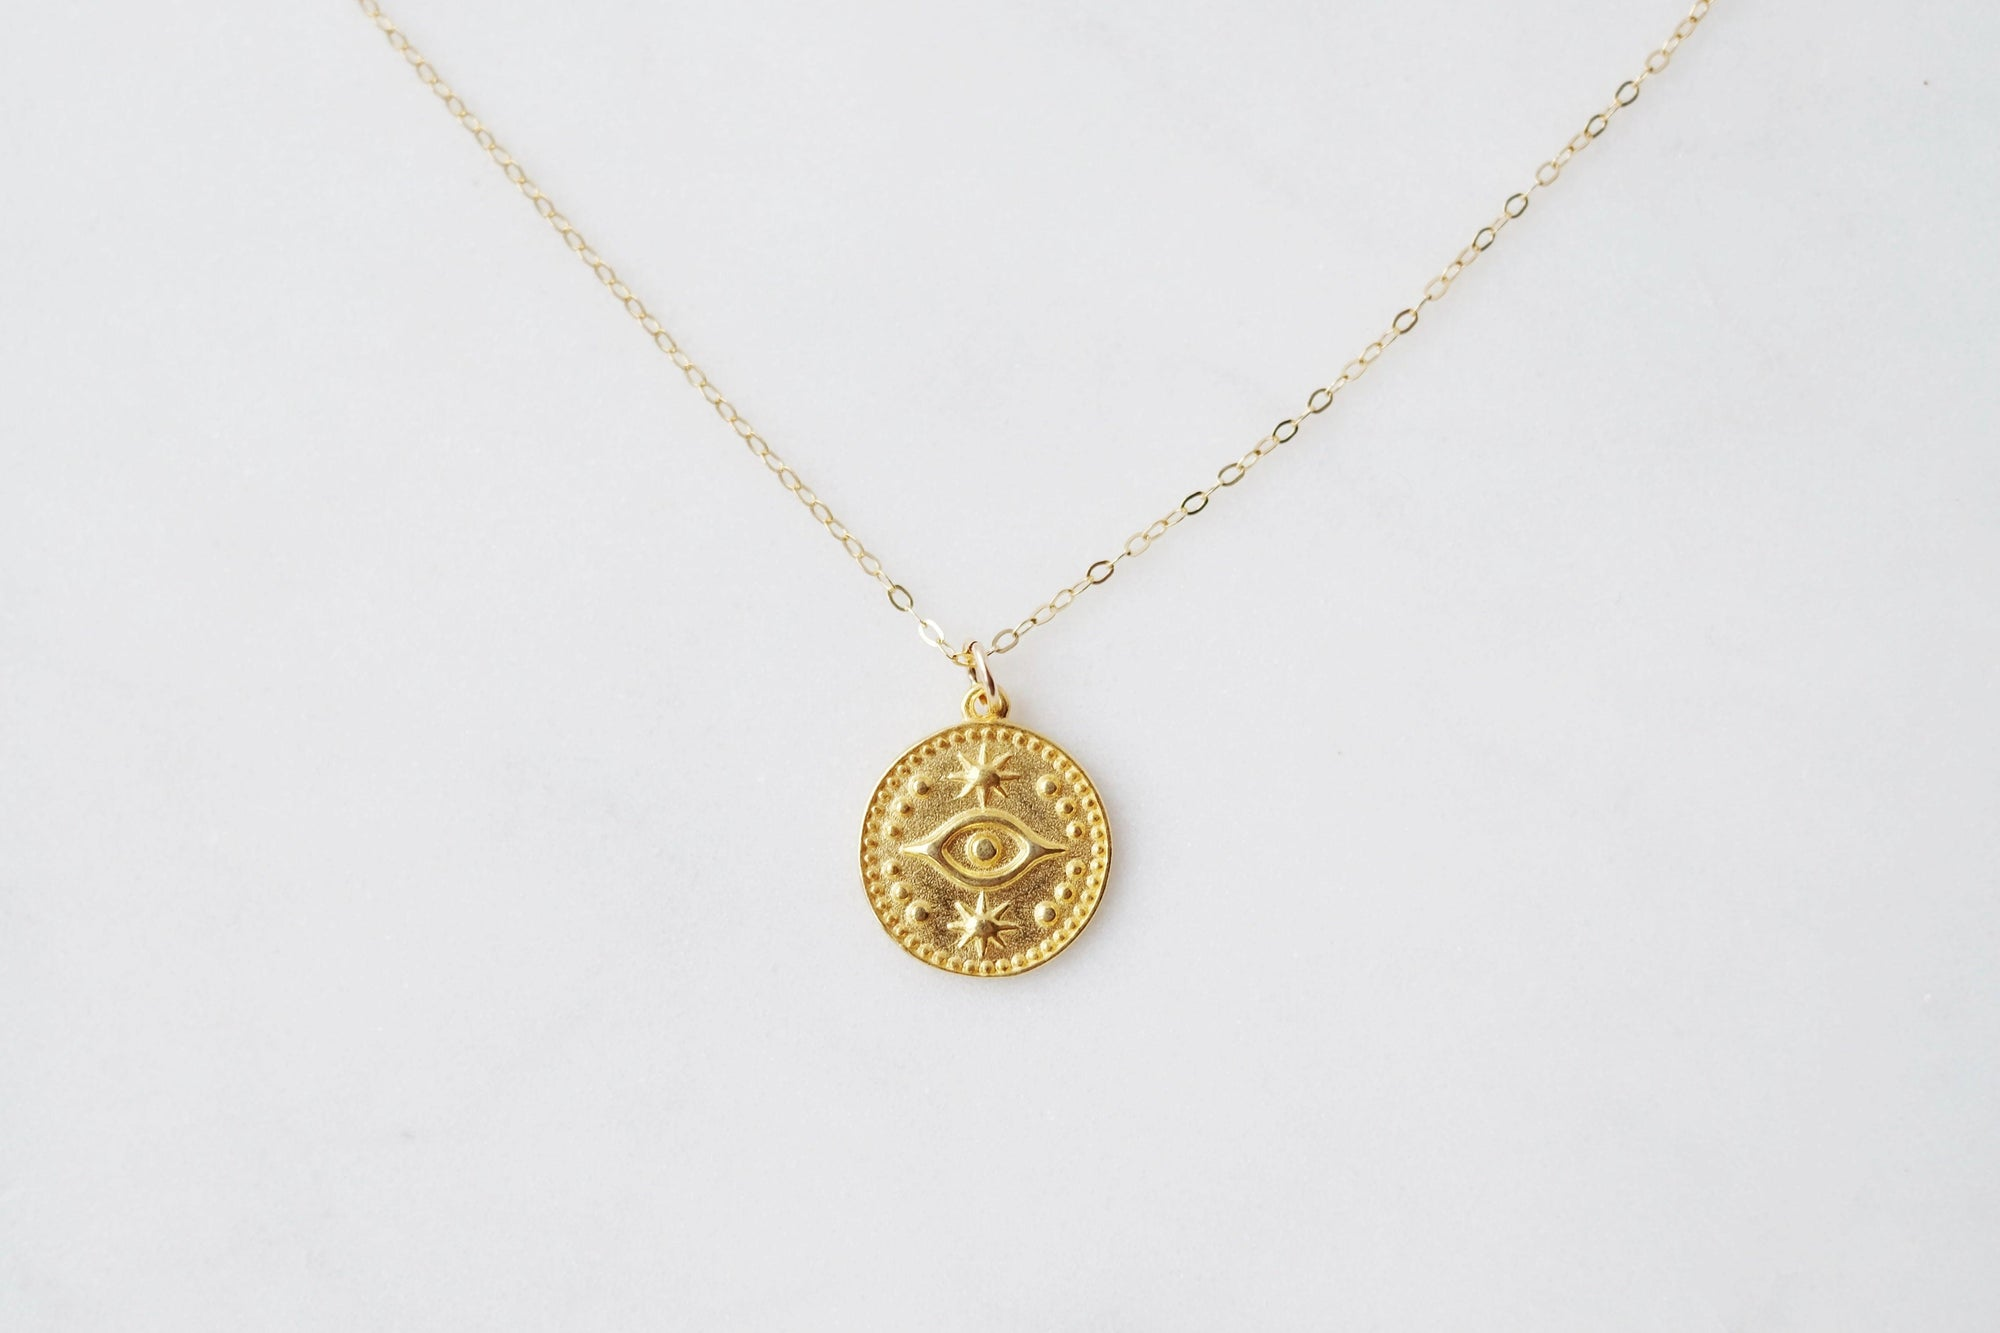 Gold Evil Eye Coin Necklace